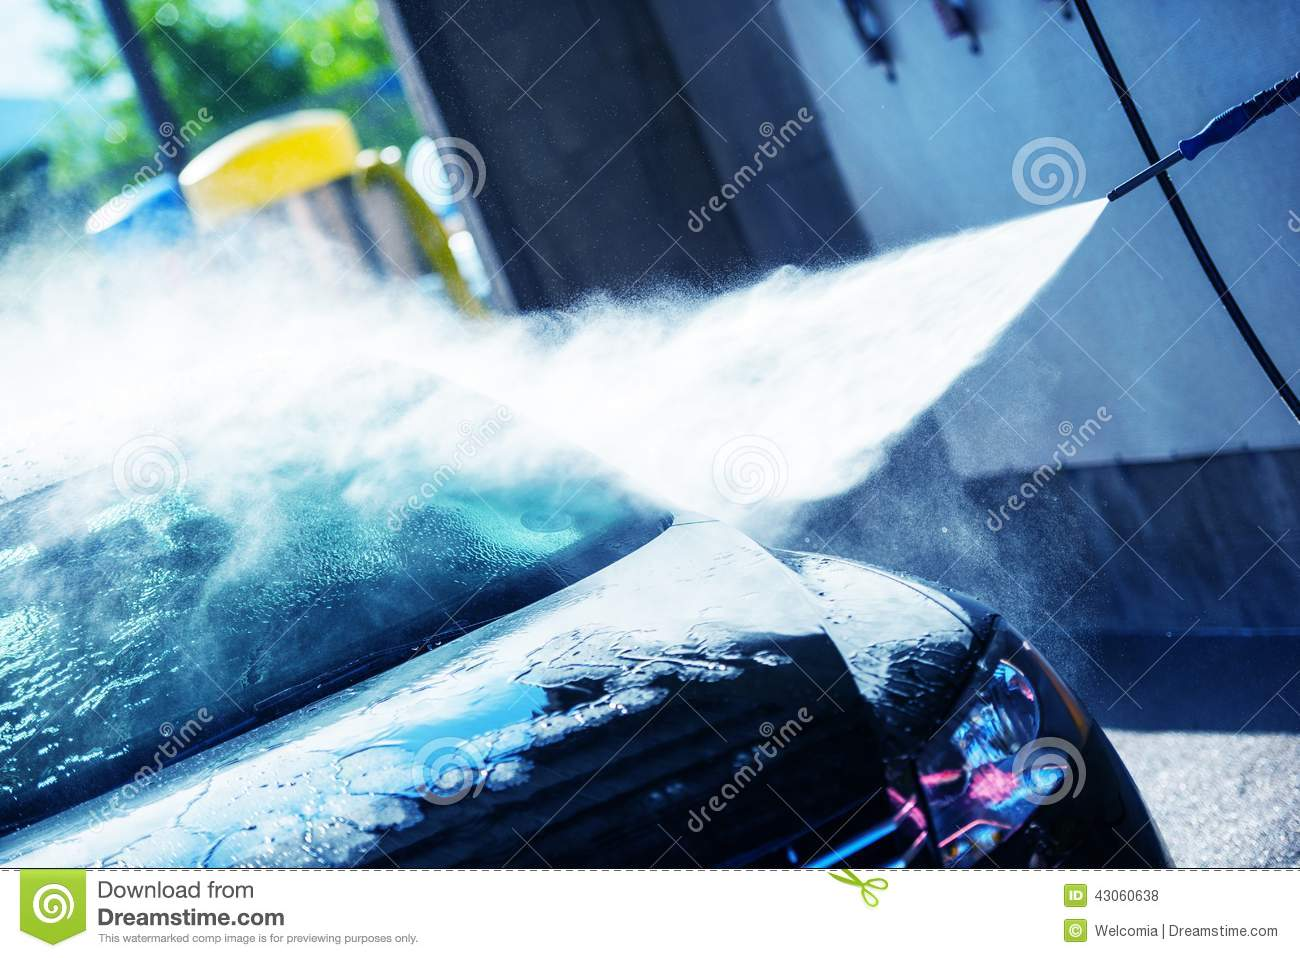 Soap Car Wash >> Hand Car Wash Cleaning Stock Photo - Image: 43060638